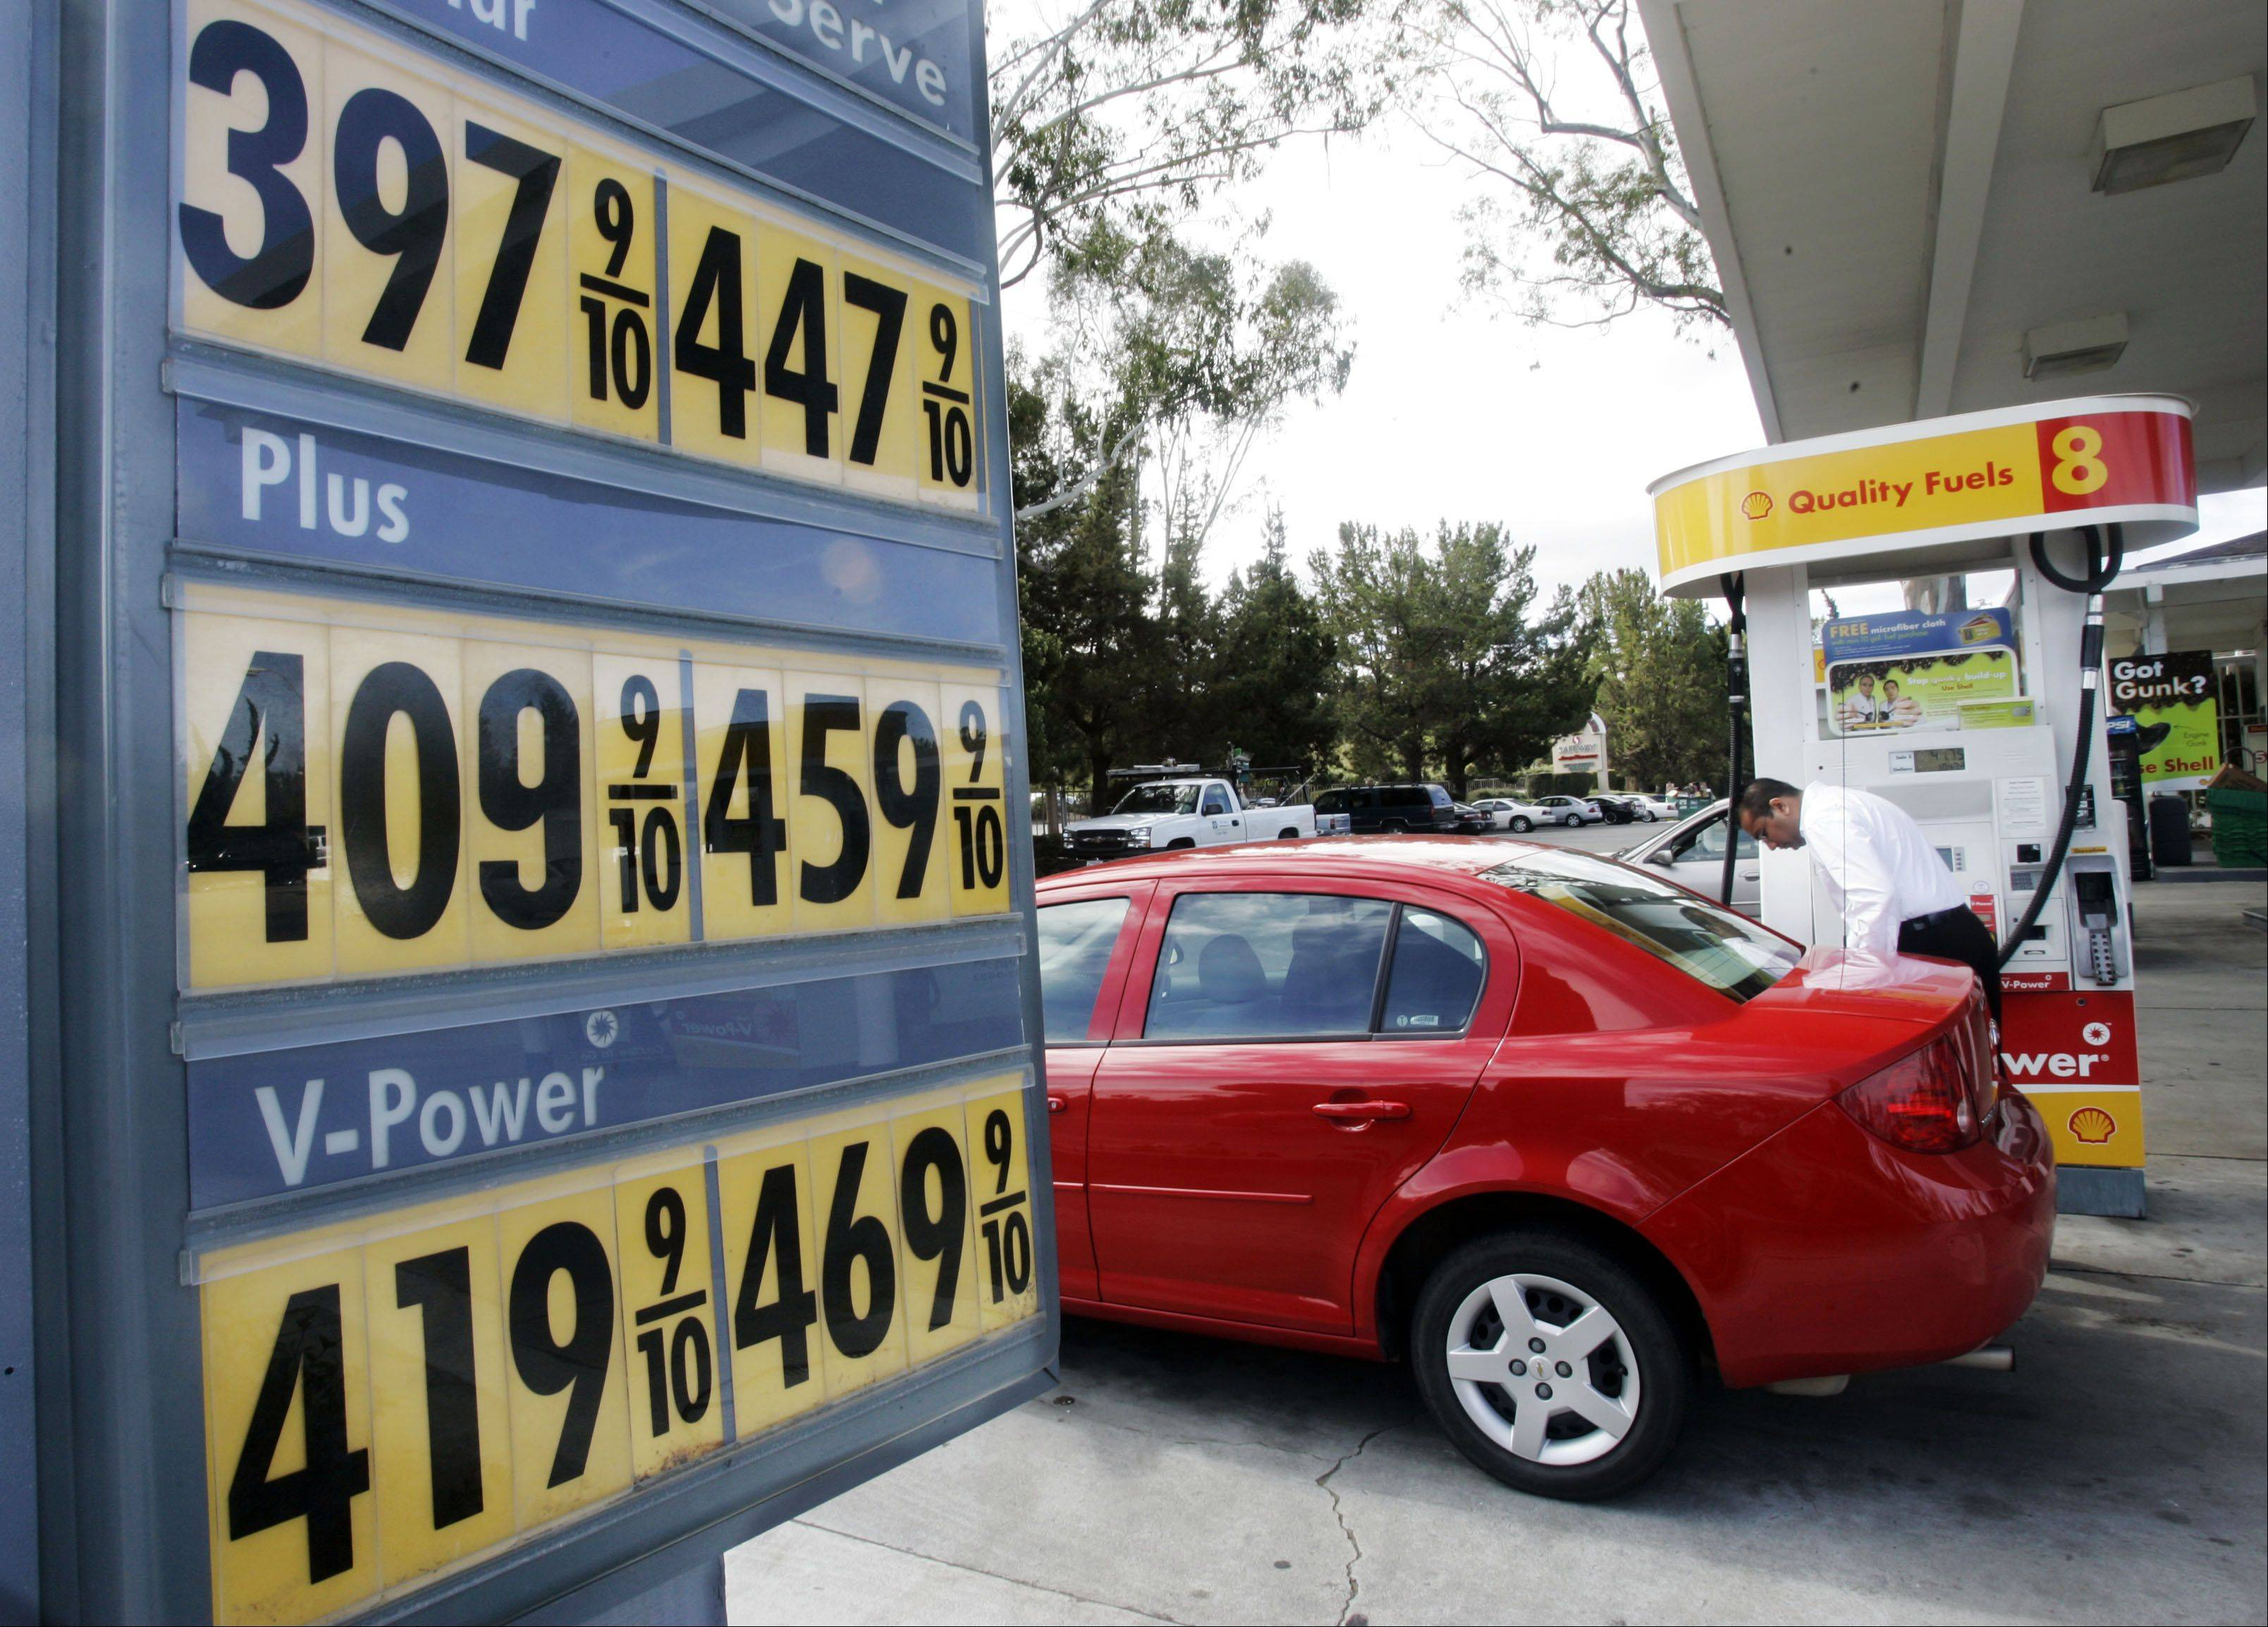 The average U.S. price of a gallon of gasoline has fallen about 8 cents over the past two weeks.